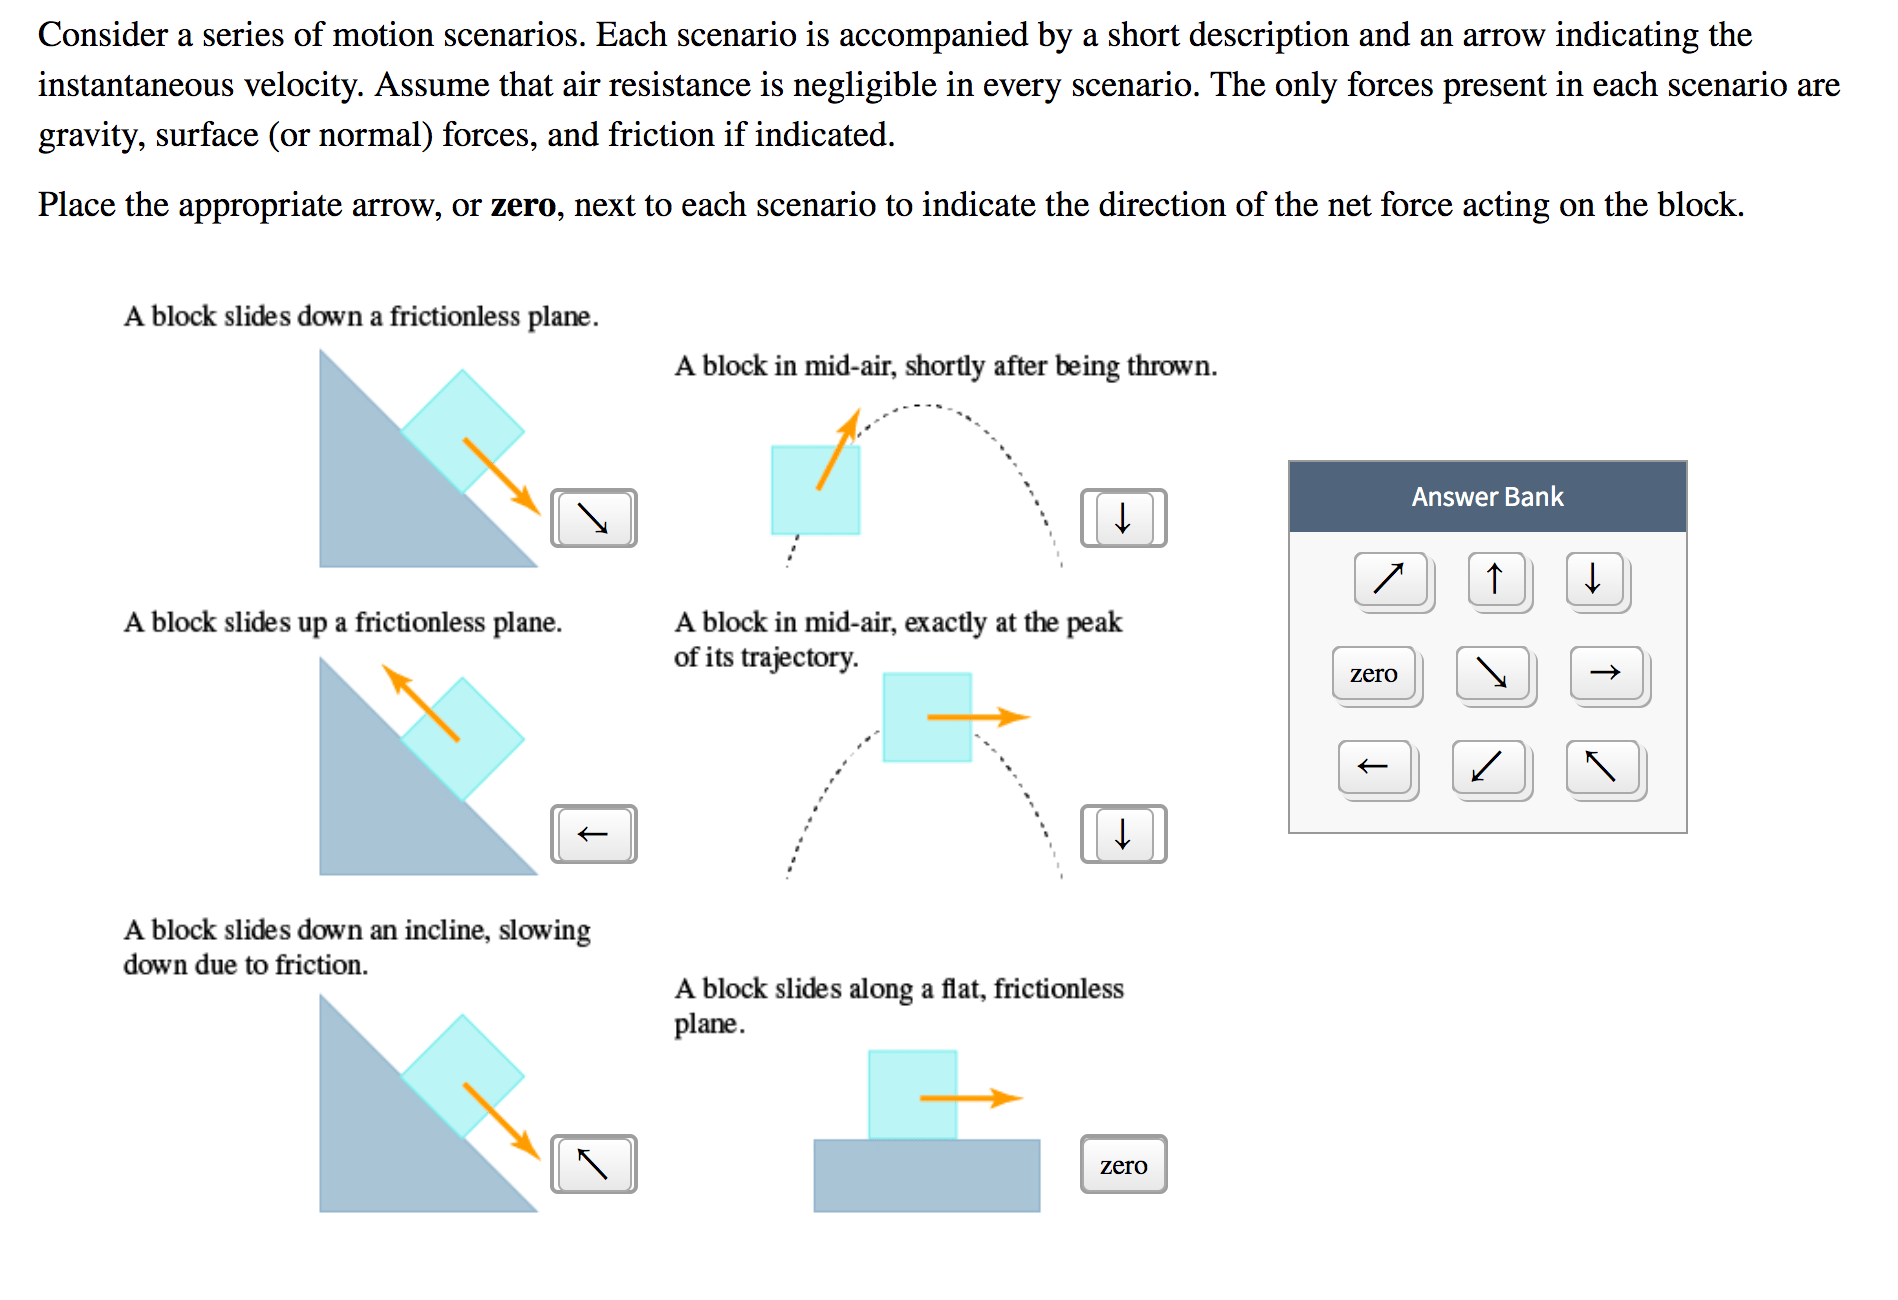 Answered Indicating The Instantaneous Velocity